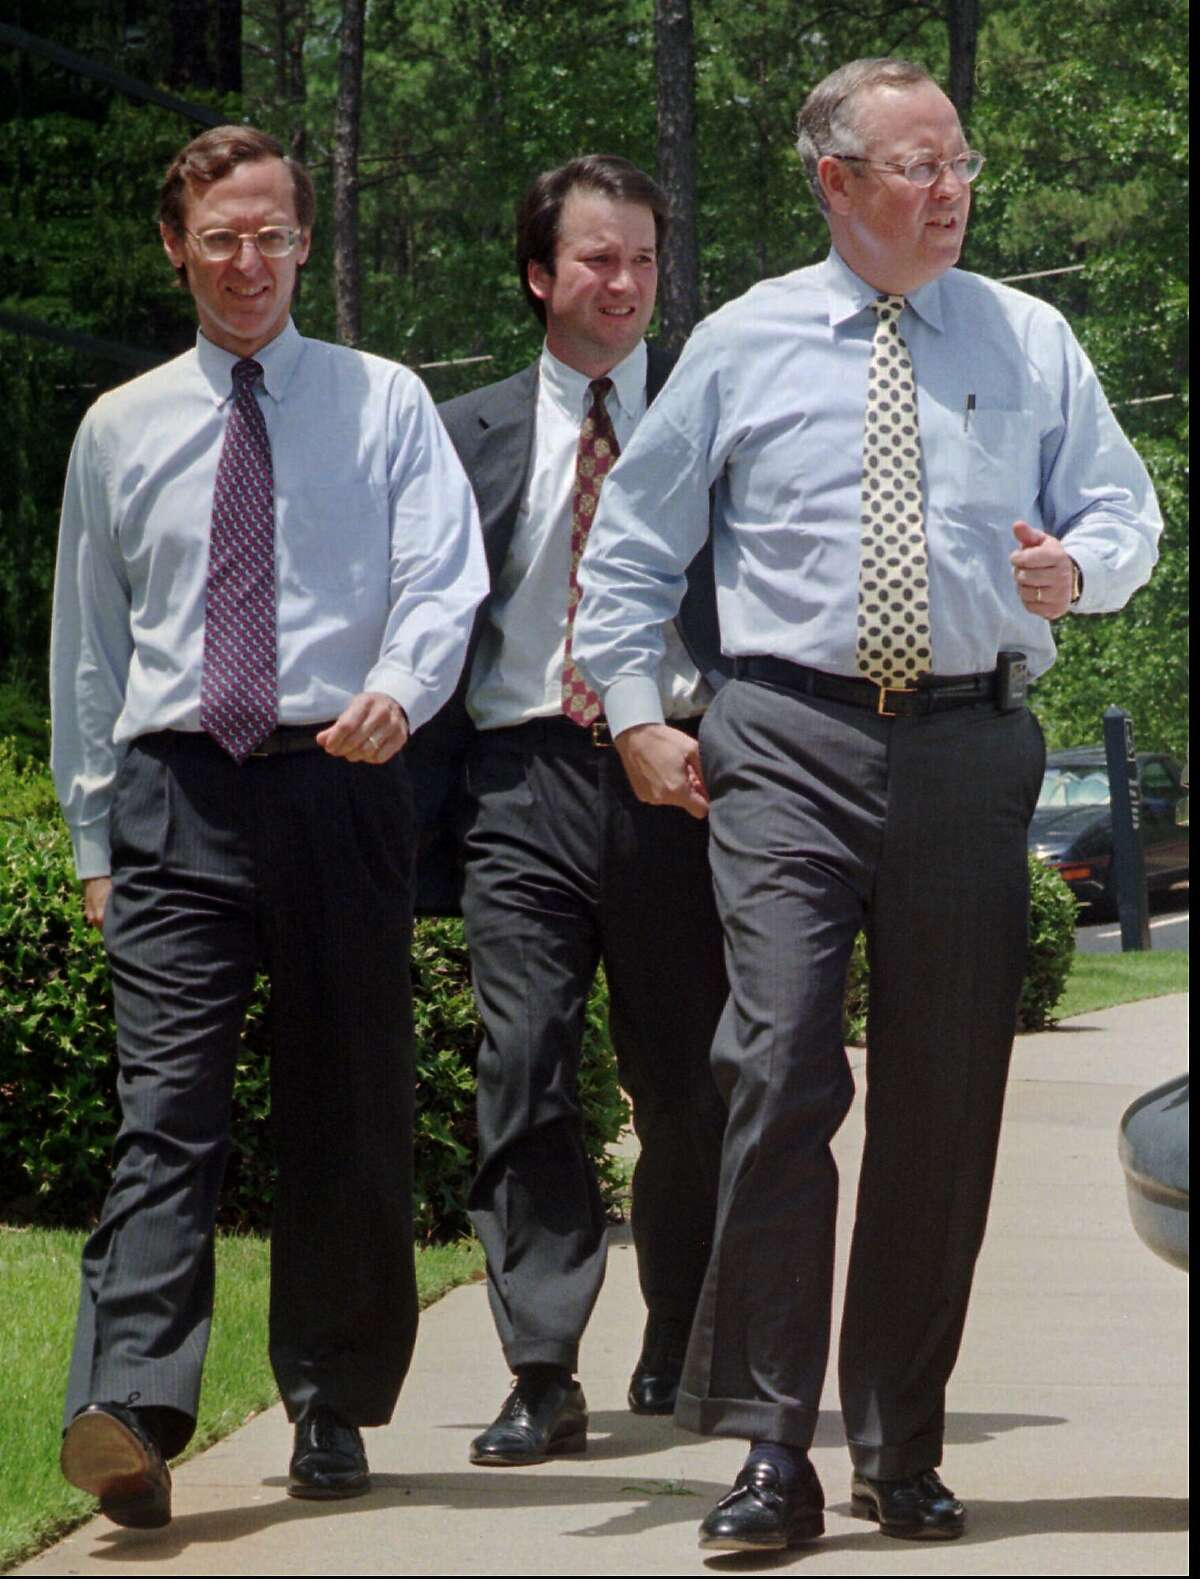 Whitewater prosecutor Kenneth Starr, right, walks with deputy independent council, John Bates, left, and associate independent council, Brett Kavanaugh on Monday, June 23, 1997, in Little Rock, Ark. In a victory for Whitewater prosectors, the Supreme Court, Monday, rejected White House efforts to withold notes that lawyers took of their conversations with Hillary Rodham Clinton. (AP Photo/Mike Wintroath)